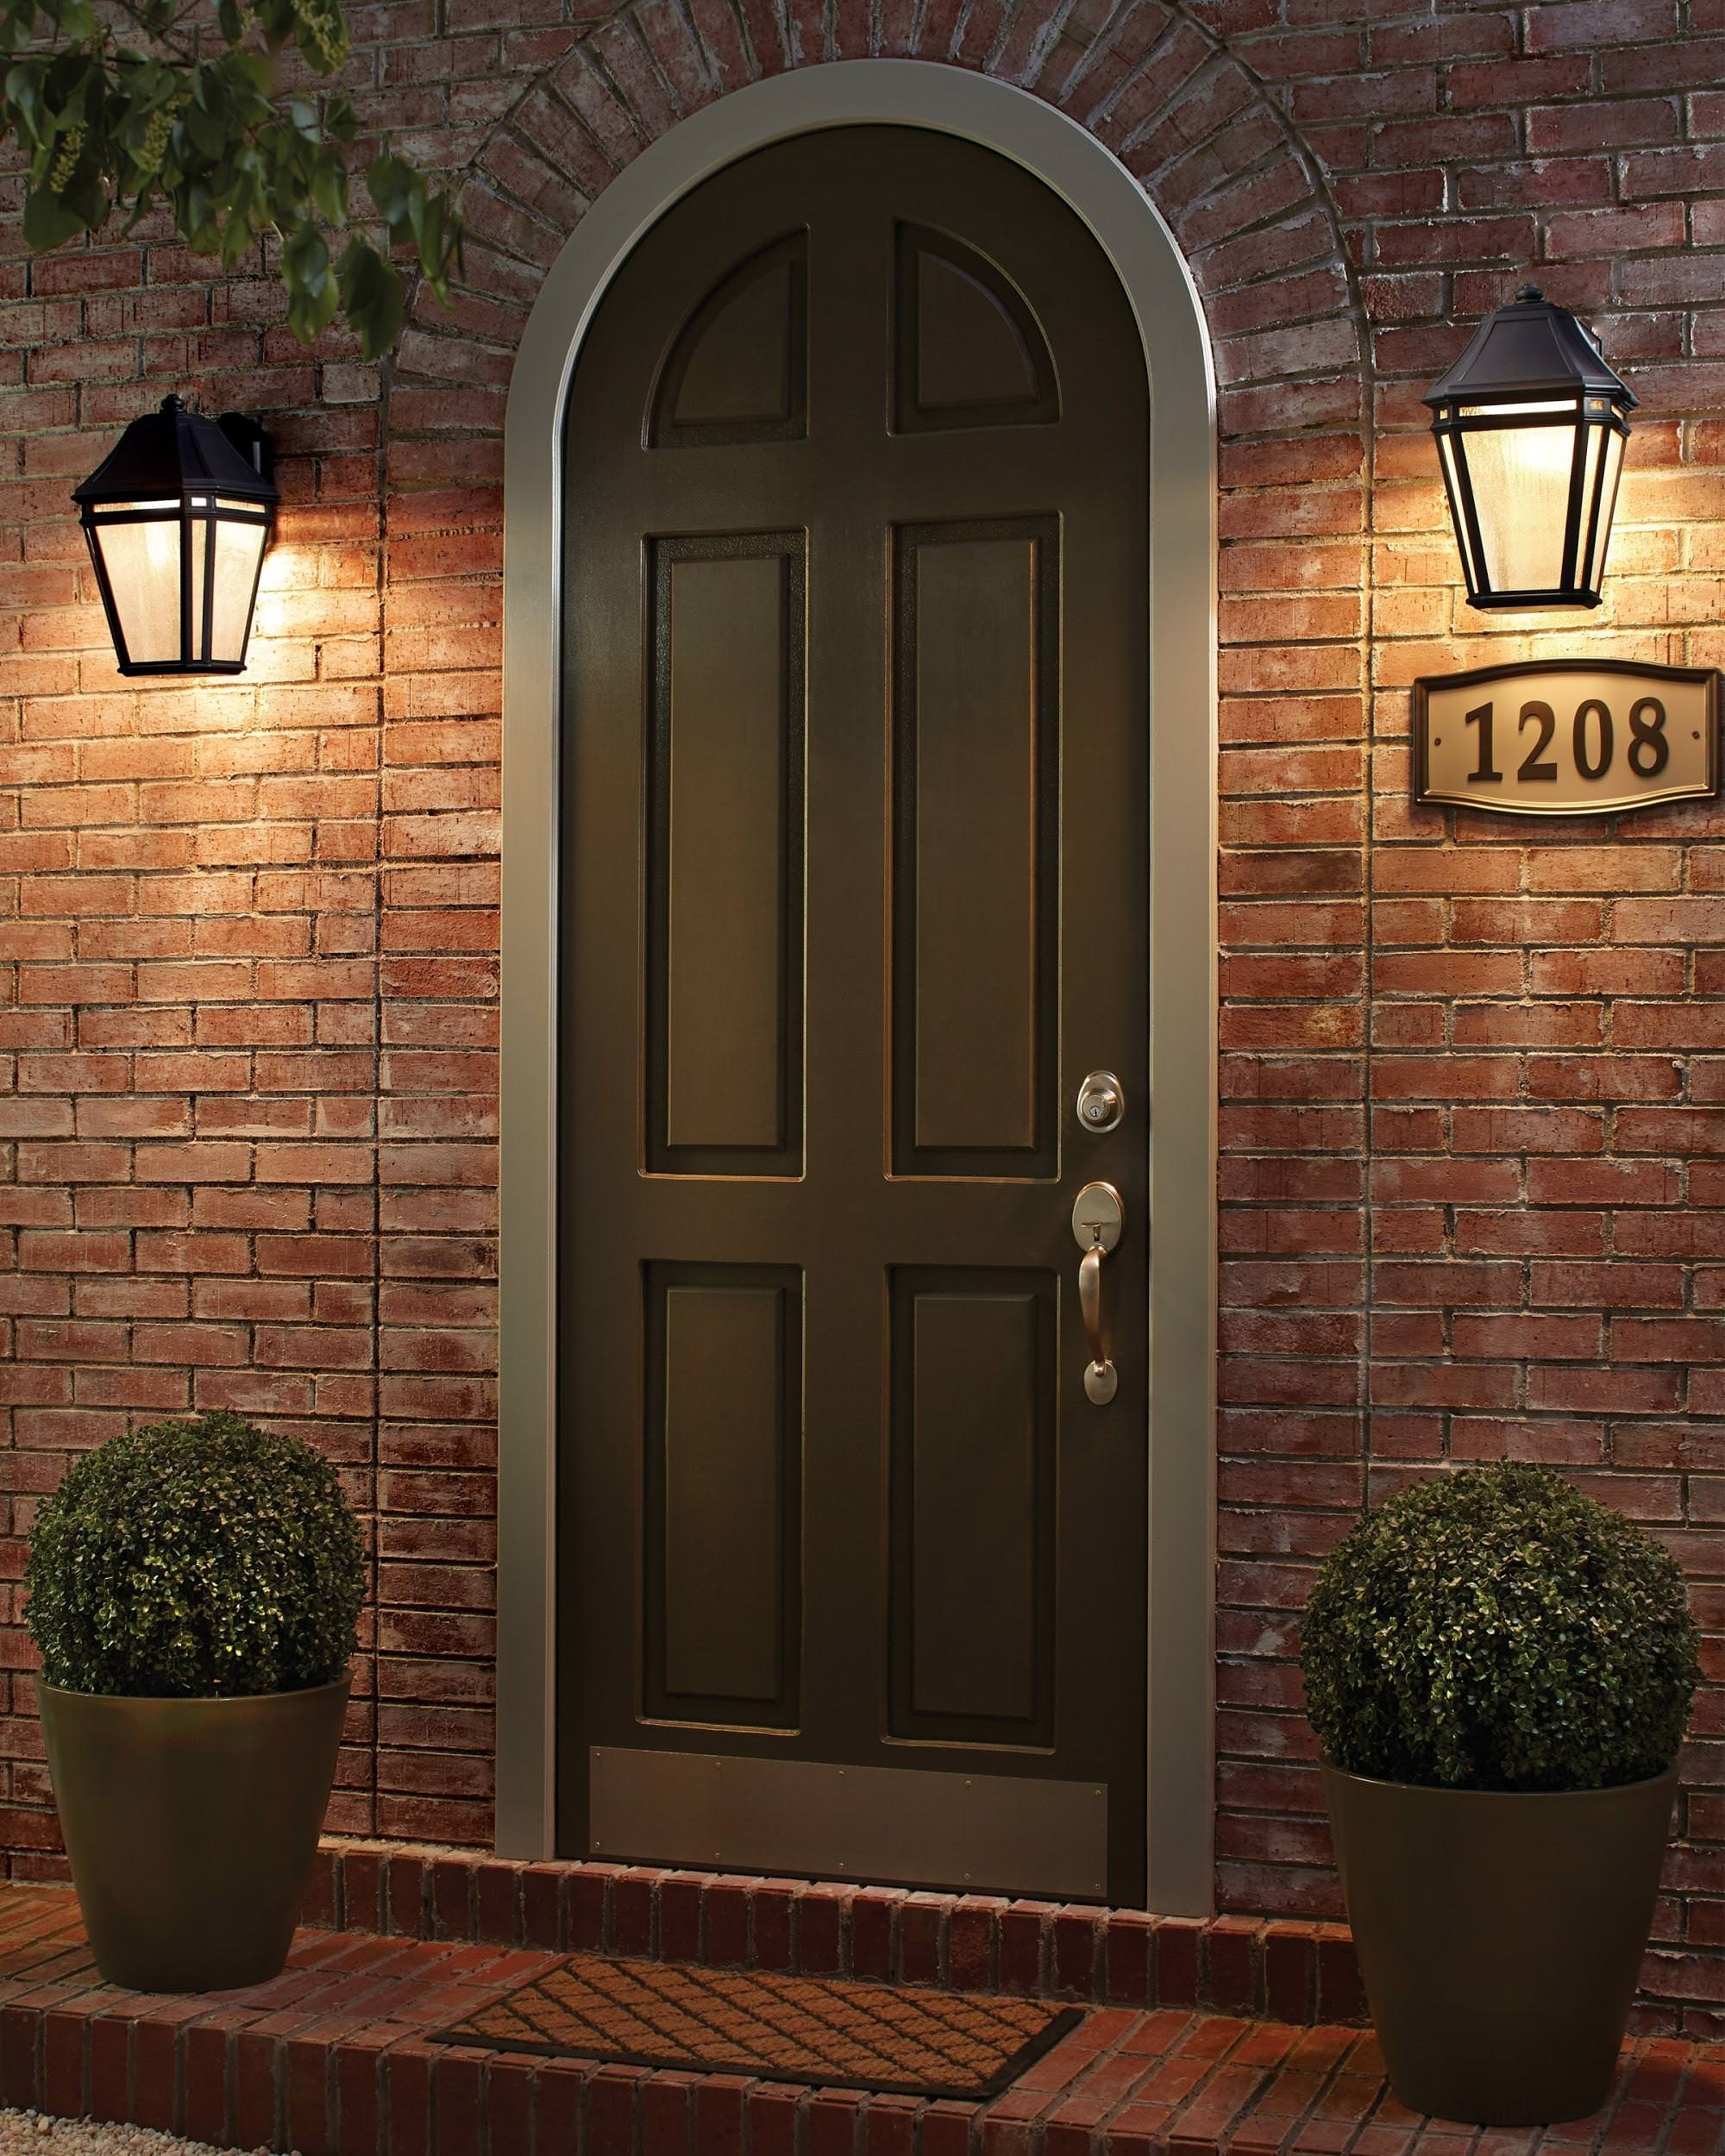 15 Different Outdoor Lighting Ideas For Your Home (All Types) Inside Outdoor Lanterns For Front Porch (Gallery 9 of 20)